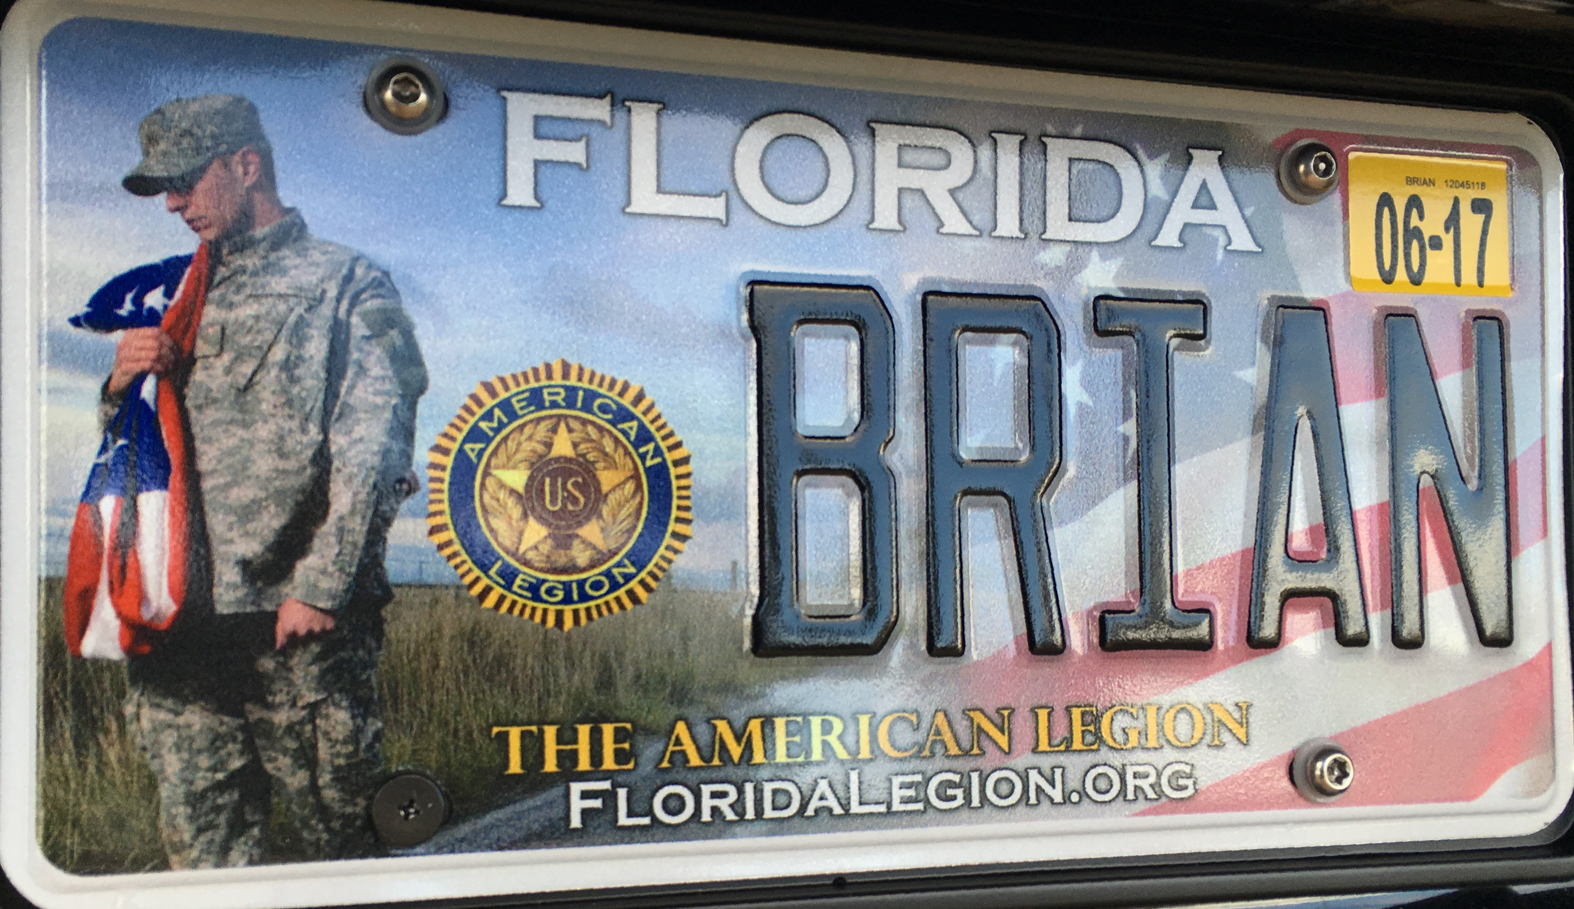 an iPhone photograph of a American Legion license plate in Florida